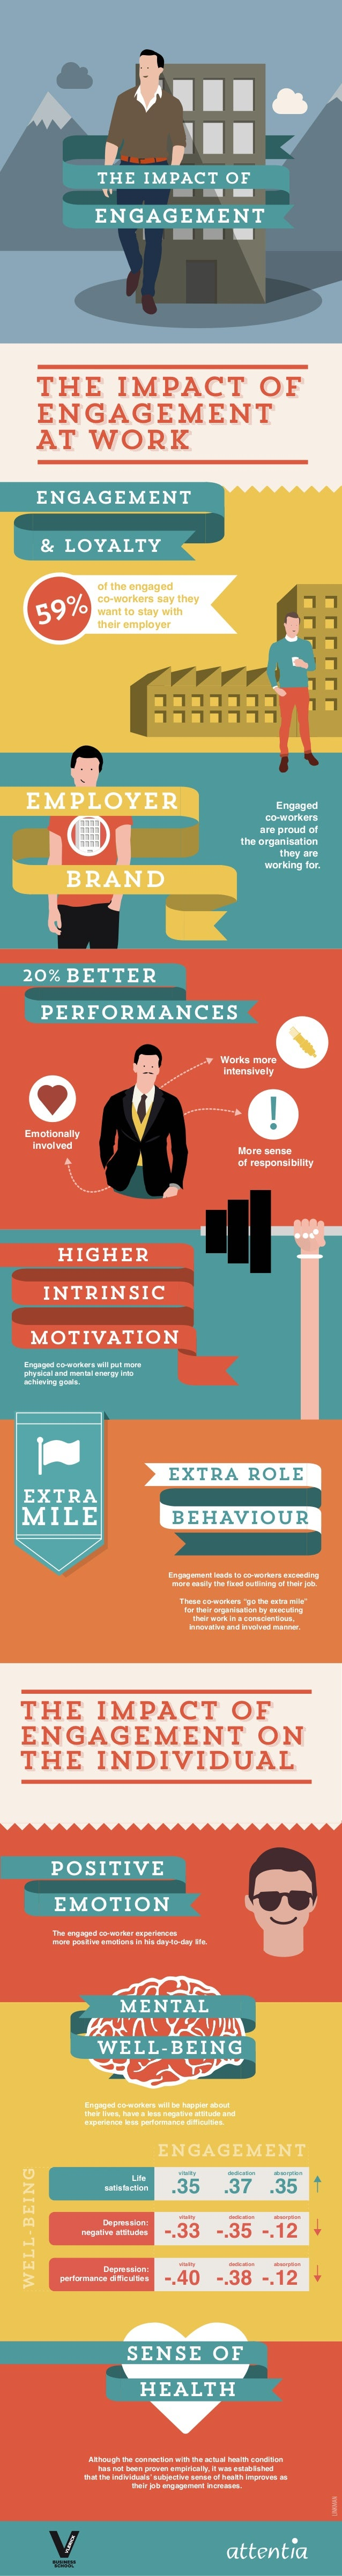 THE IMPACT OF  engagement  THE IMPACT OF engagement AT WORK engagement & LOYALTY  9% 5  of the engaged co-workers say they...